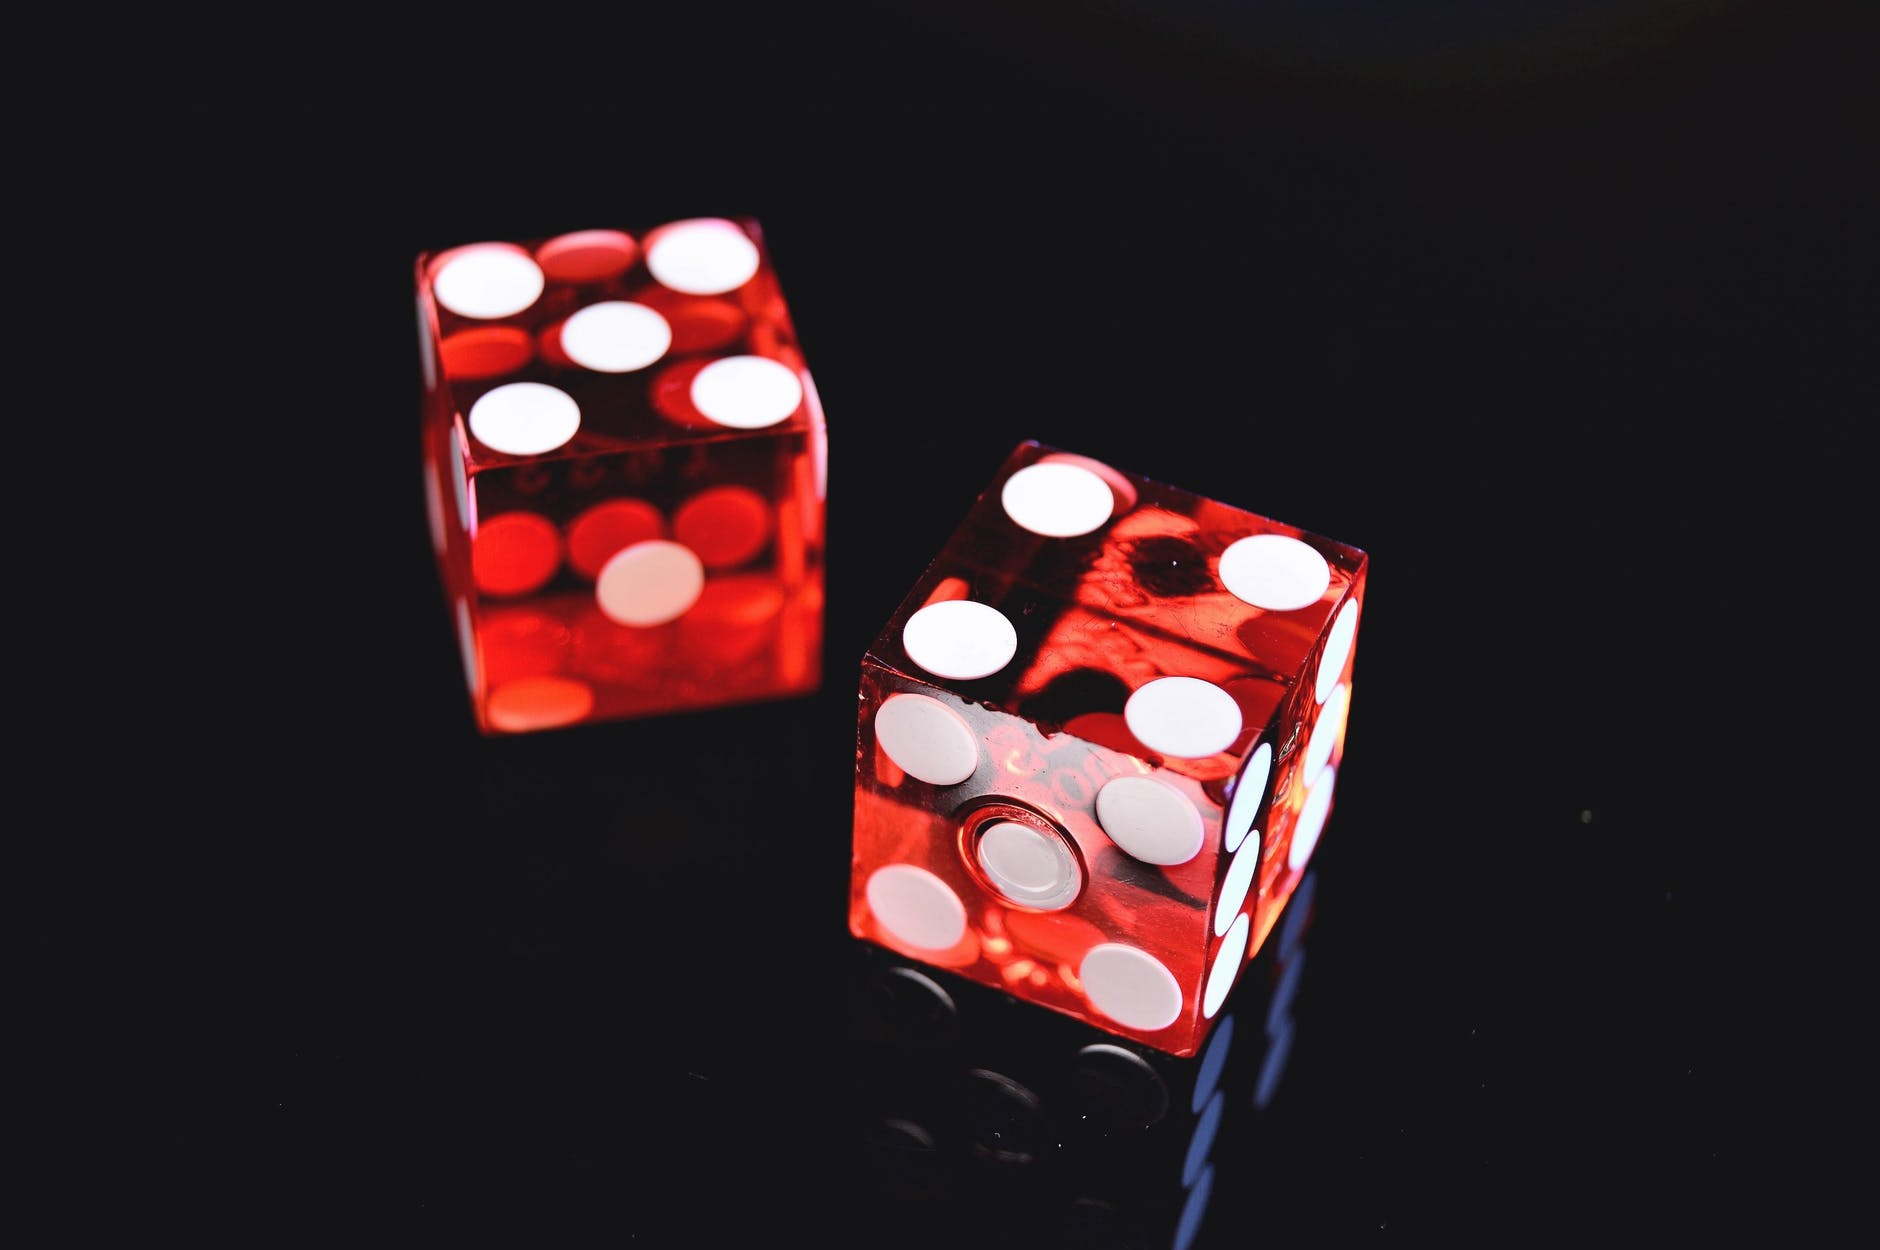 How Can I Tell If A Gambling Site Is Legal Or Not?